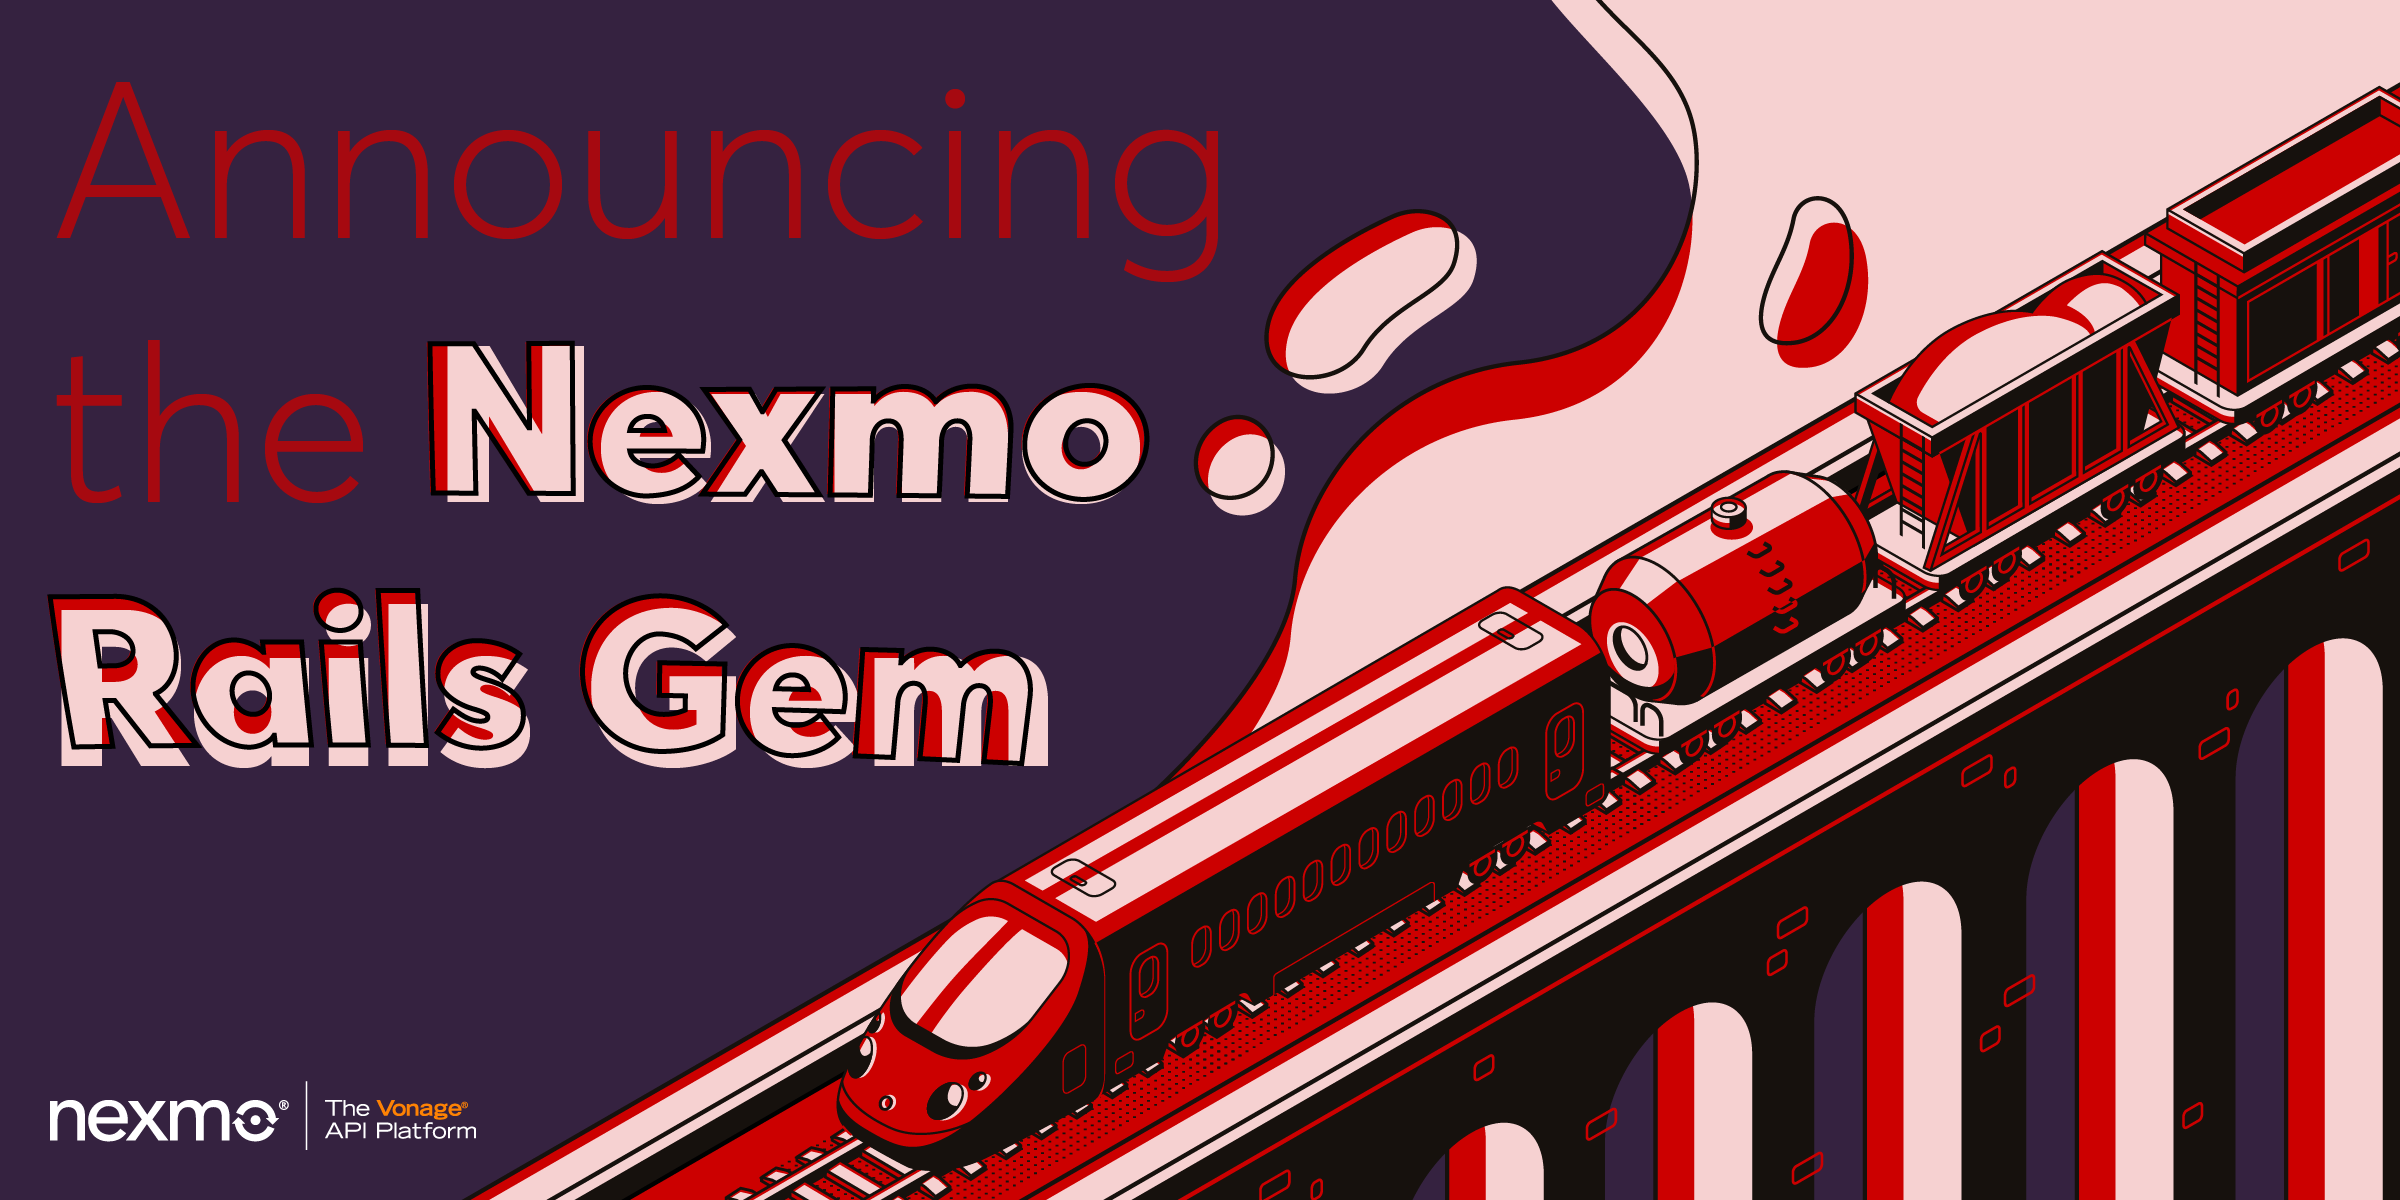 Announcing the Nexmo Rails Gem - Nexmo Developer Blog